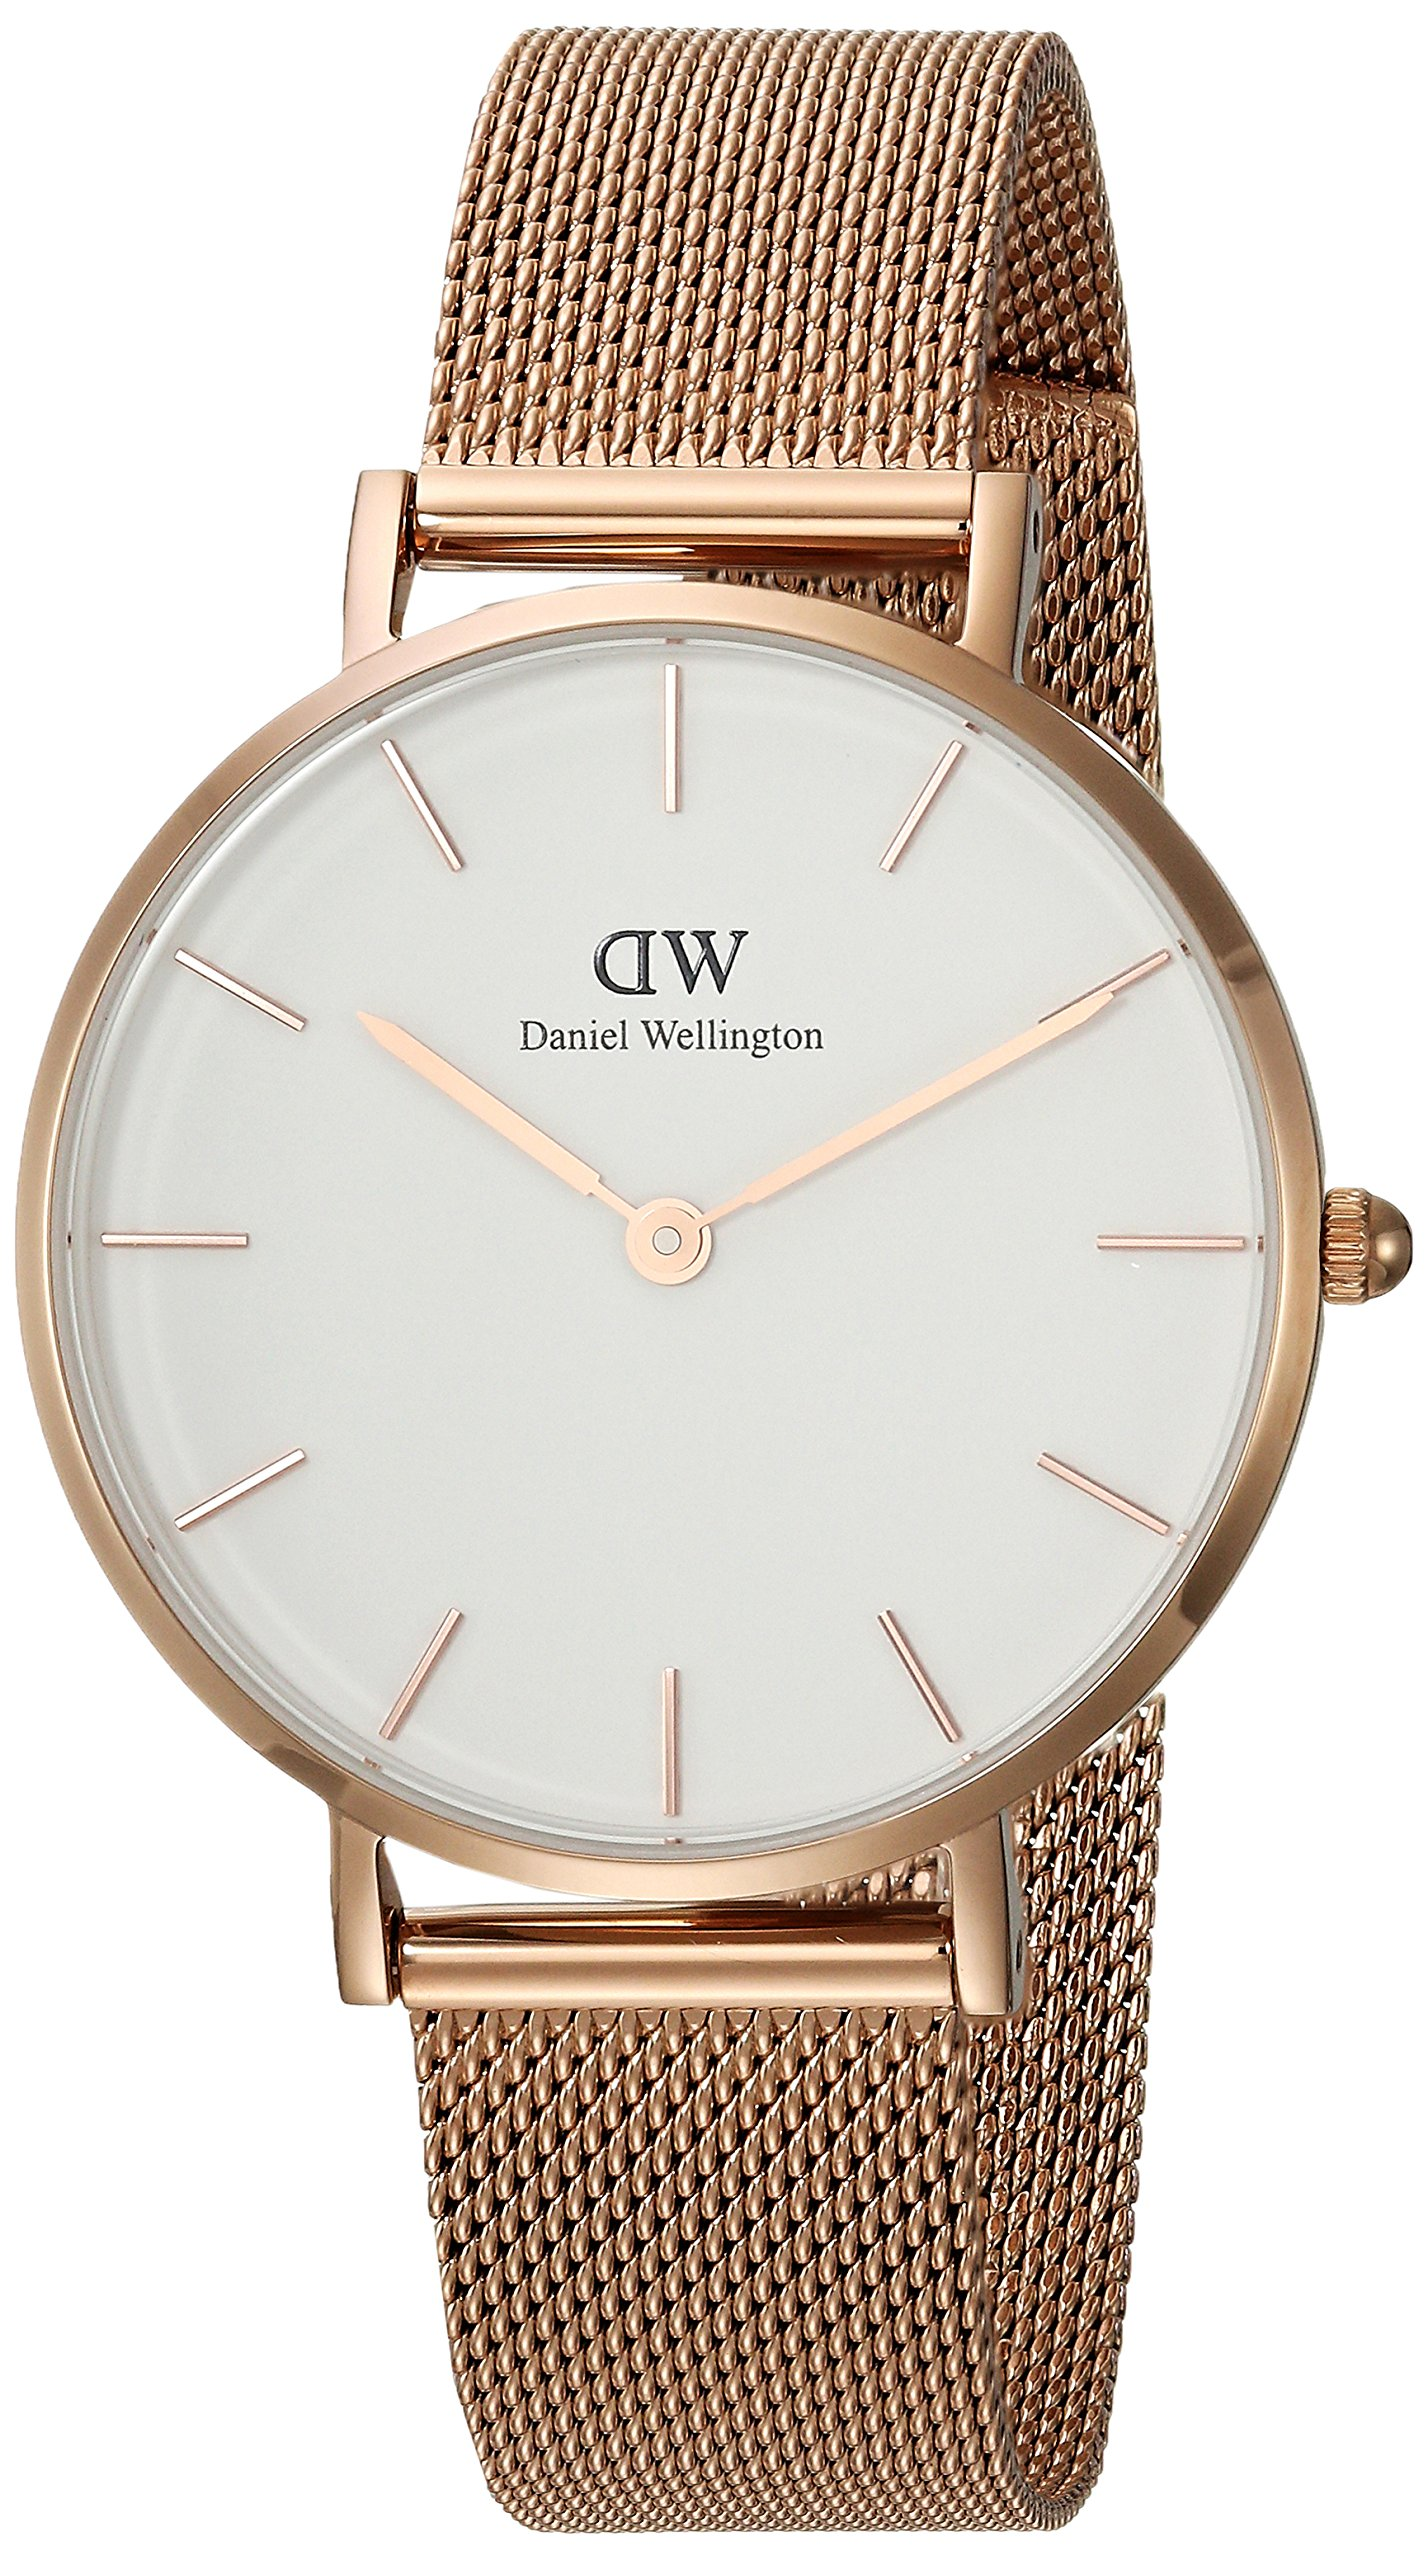 Daniel Wellington Gift Set, Classic Petite Melrose 32mm Watch with Rose Gold Classic Cuff, Color:Rose Gold-Toned (Model: DW00500003) by Daniel Wellington (Image #1)